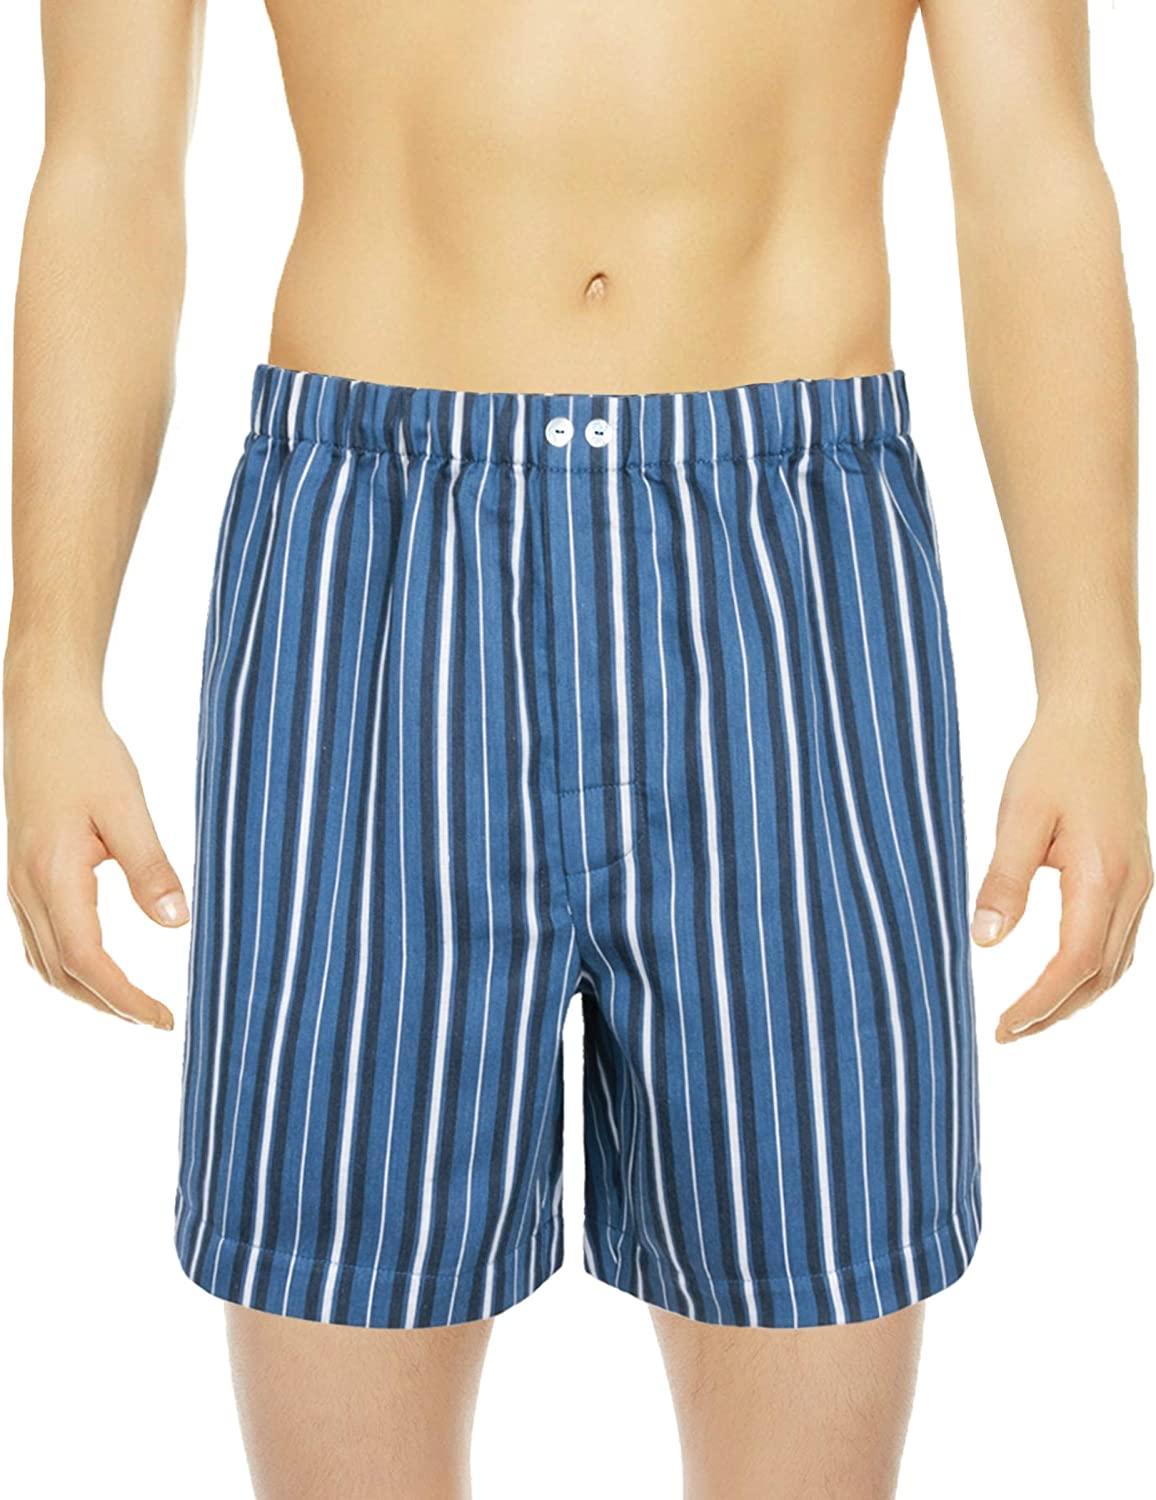 Blue Striped Boxers Shorts Ranking TOP14 Ranking integrated 1st place Full Luxurious Cut Linen Sateen Cott